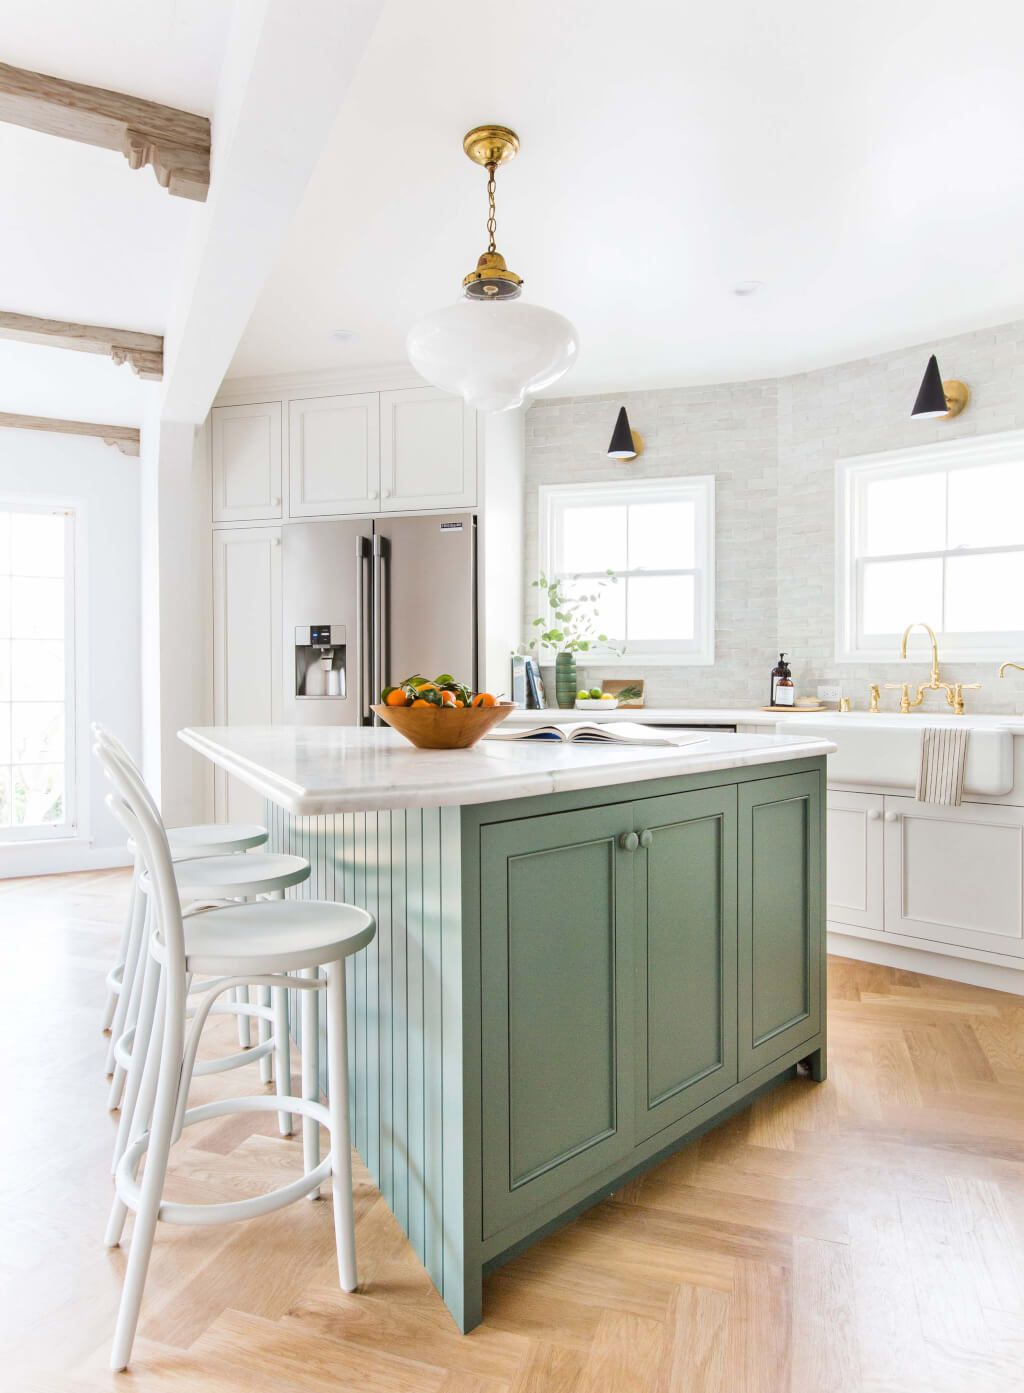 My Go To Neutral Paint Colors English Country Kitchens Kitchen Design Kitchen Trends